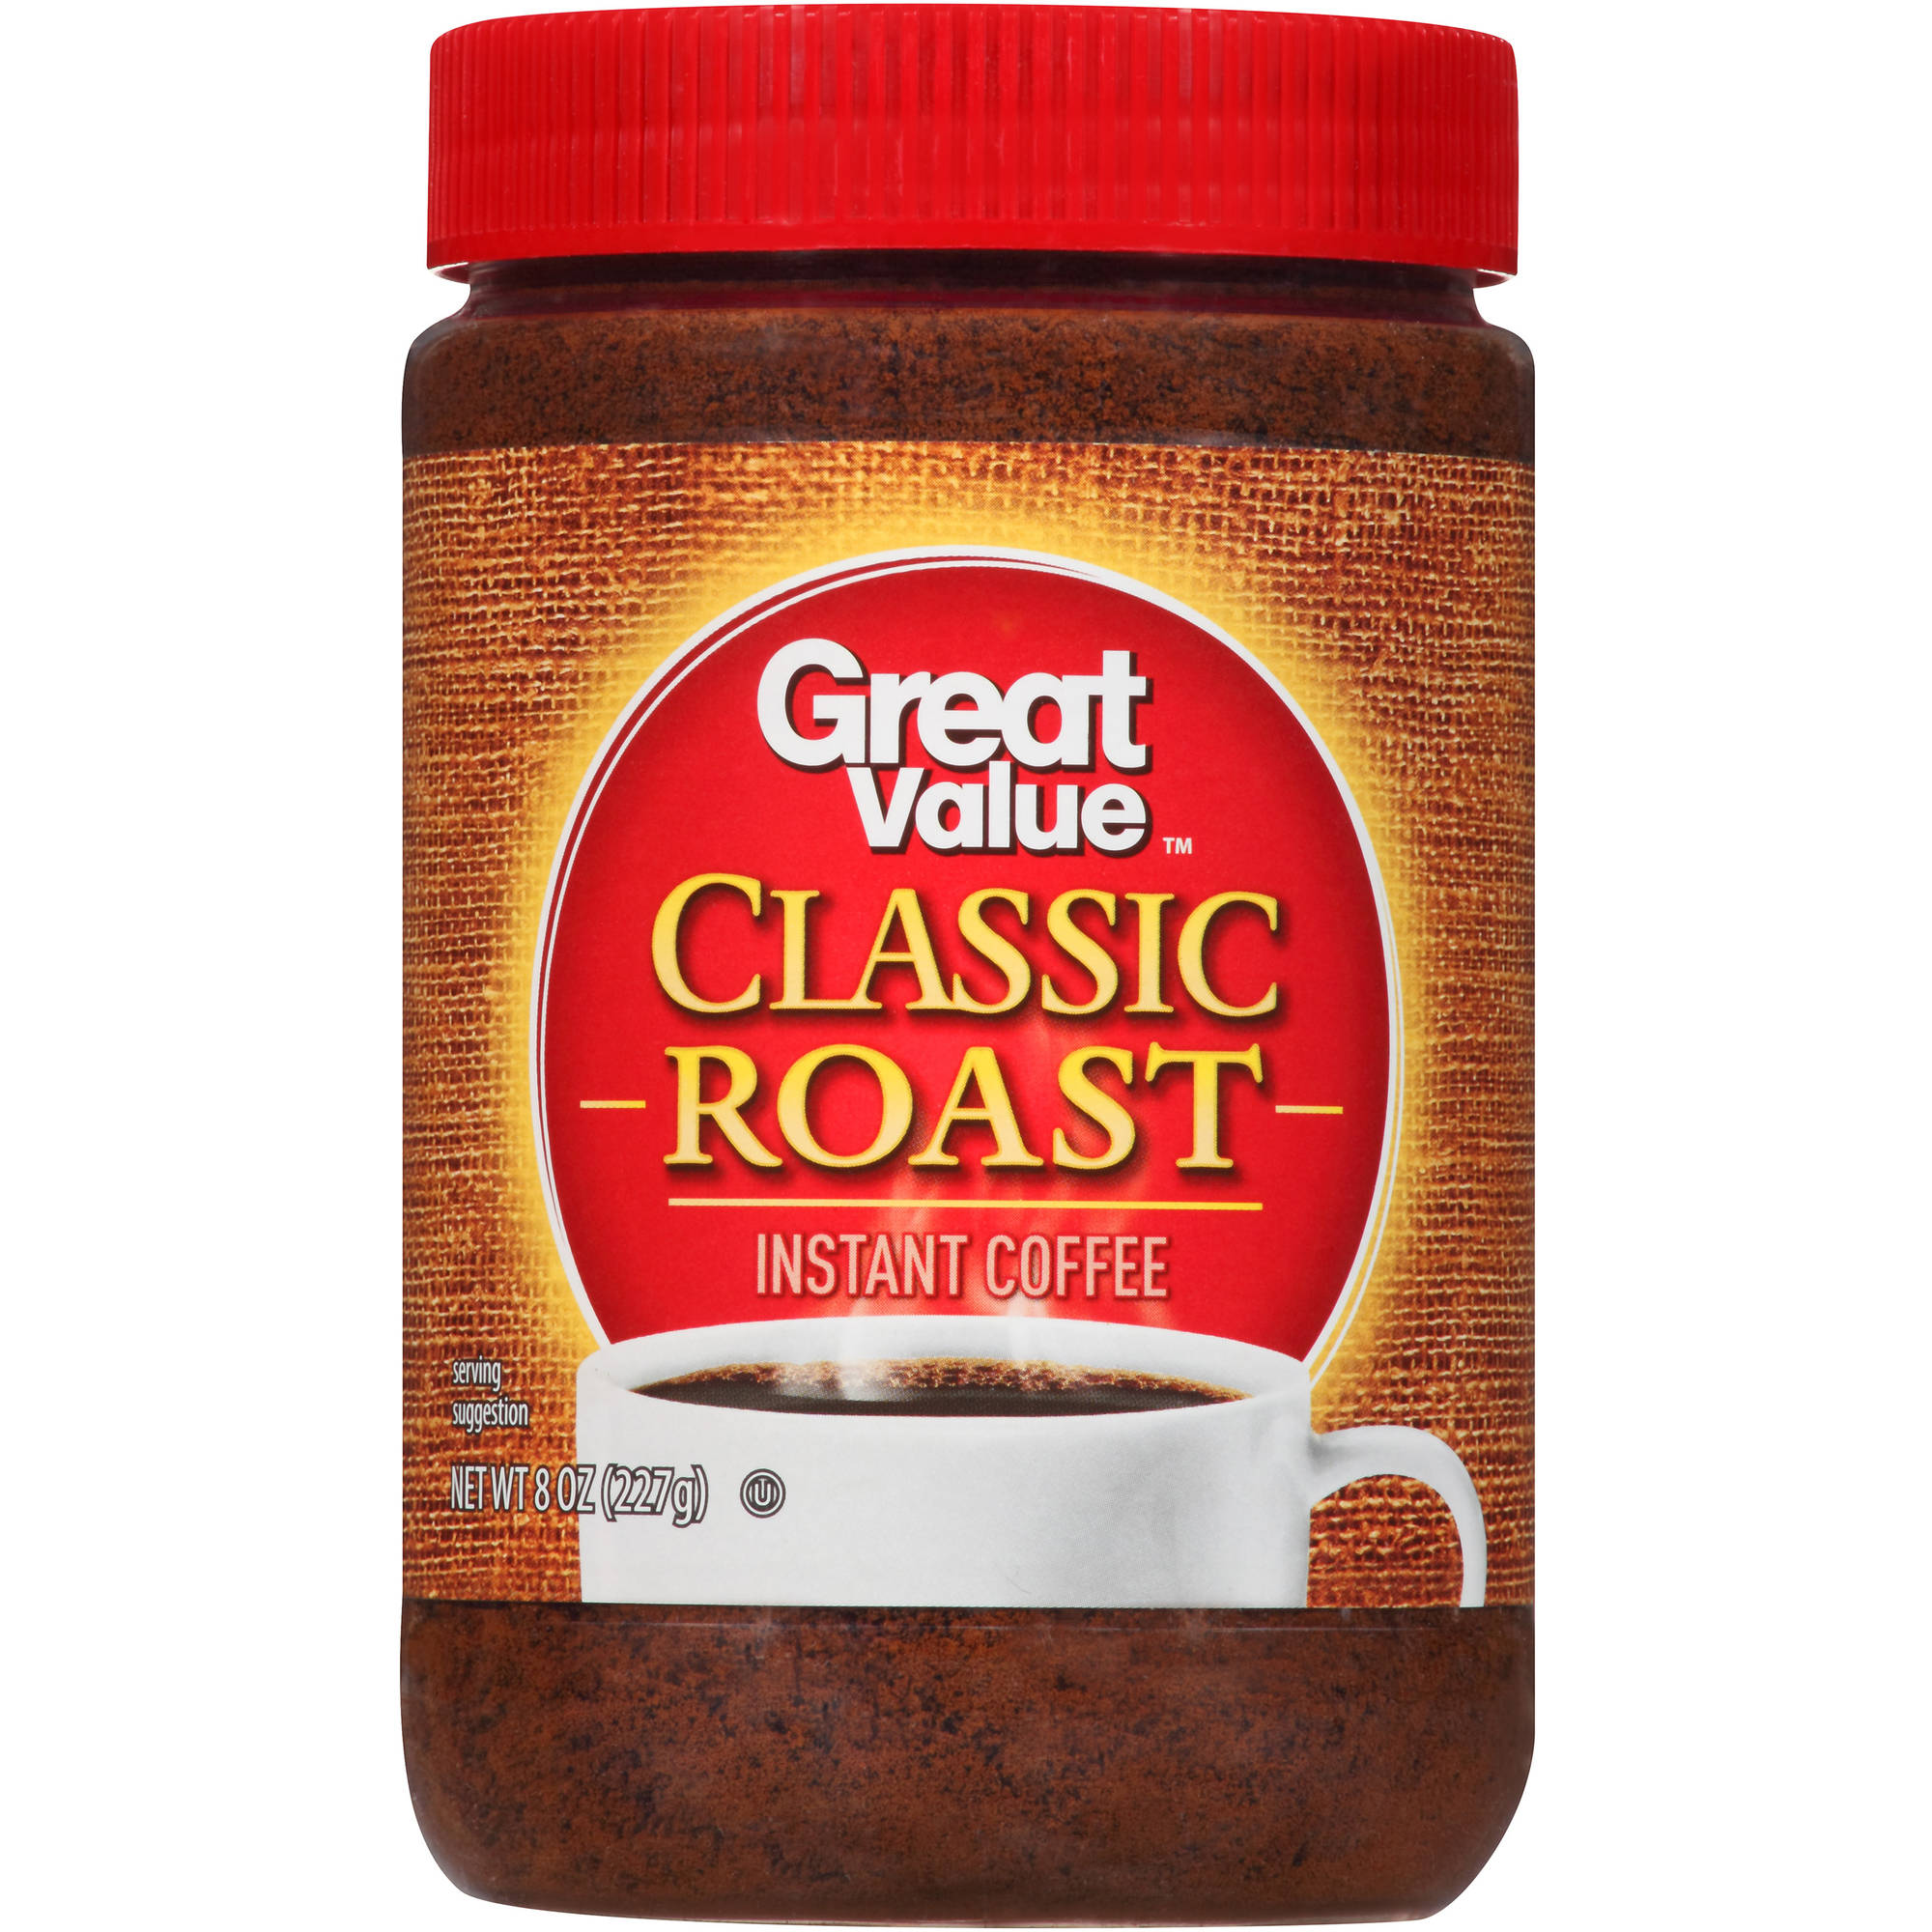 Great Value Classic Roast Instant Coffee, 8 oz